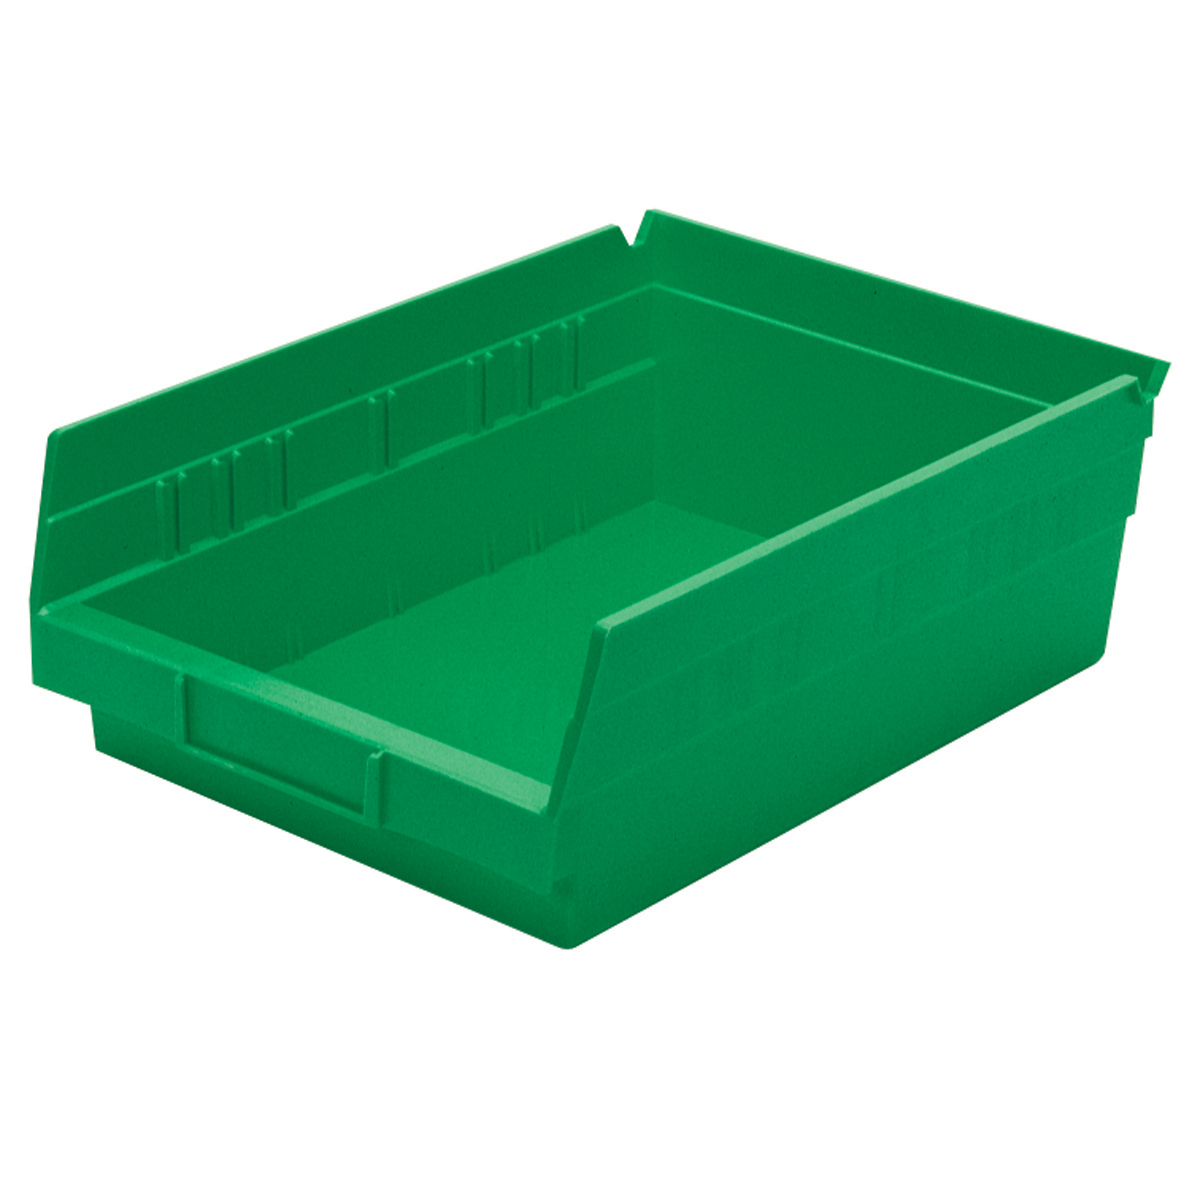 Shelf Bin 11-5/8 x 8-3/8 x 4, Green (30150GREEN).  This item sold in carton quantities of 12.